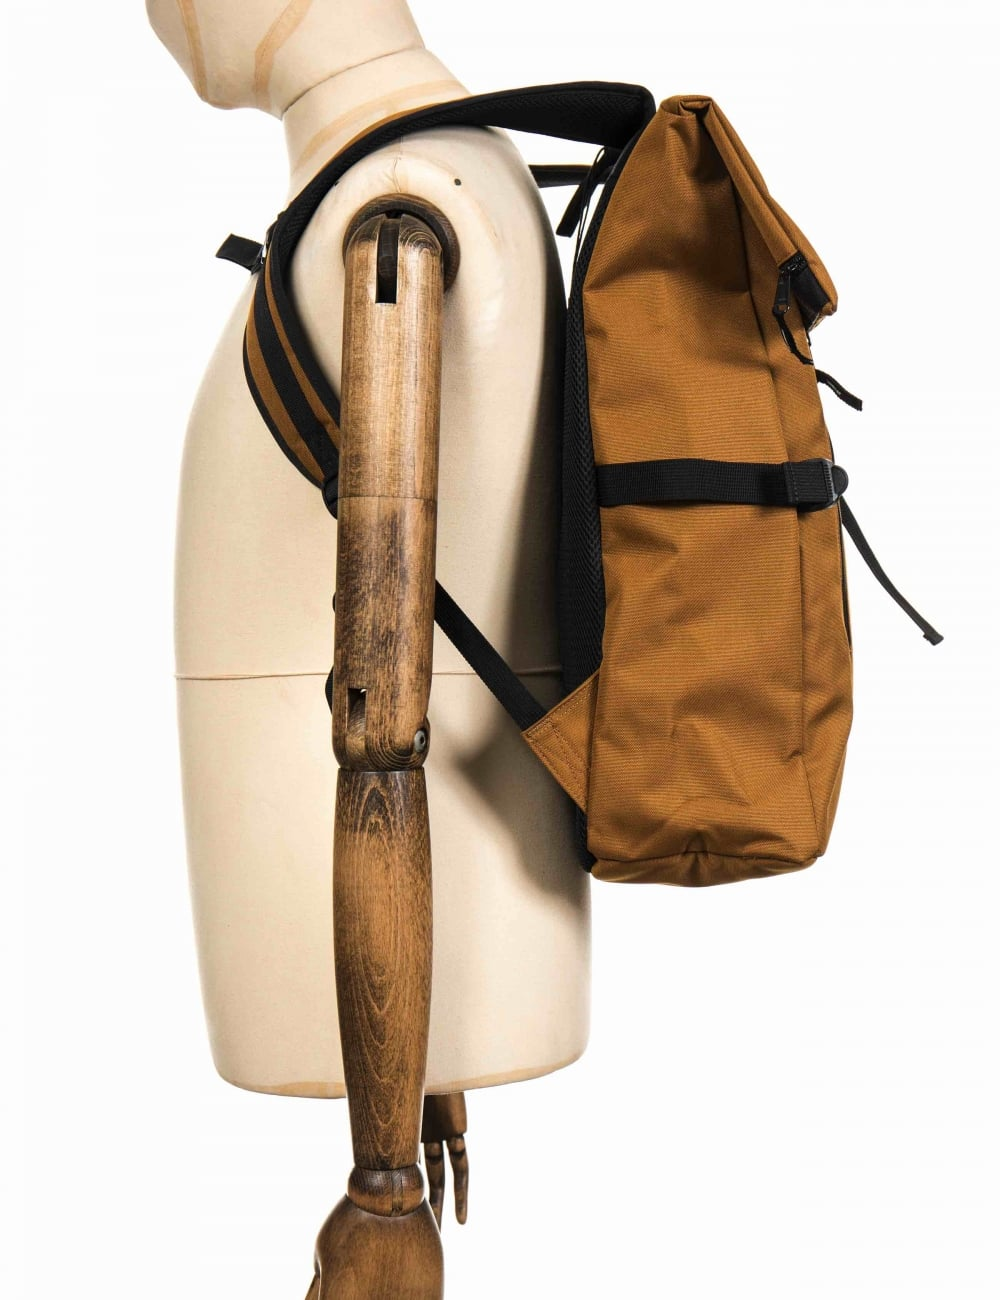 73db379ec1 Carhartt WIP Phil Backpack - Hamilton Brown - Accessories from Fat ...